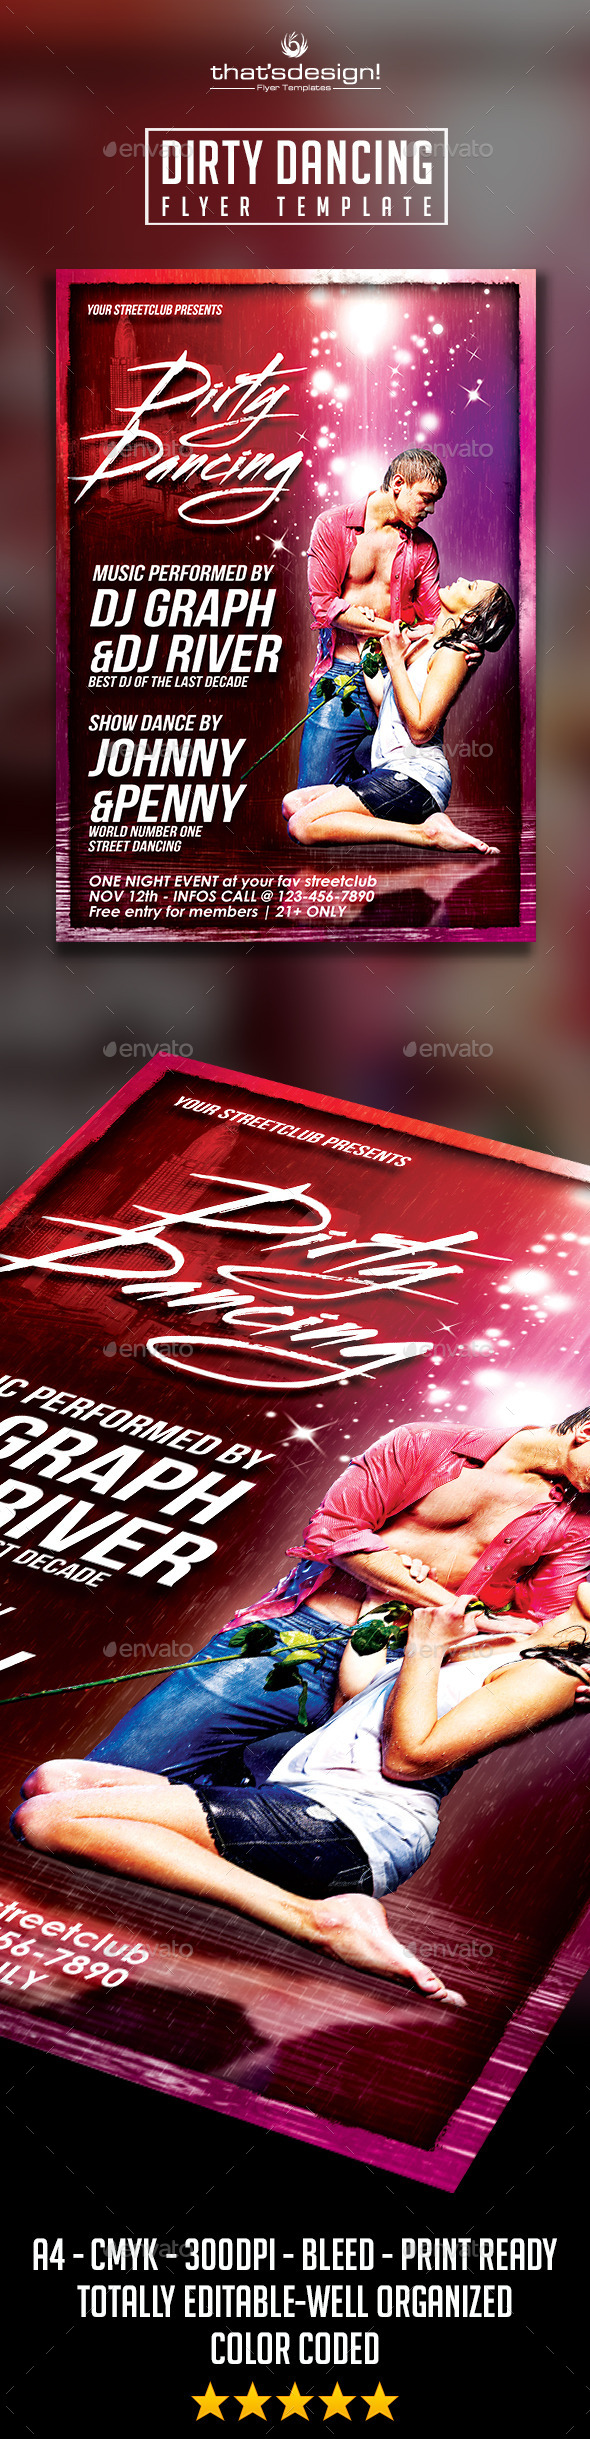 Dirty Dancing Streetclub Flyer Template - Clubs & Parties Events